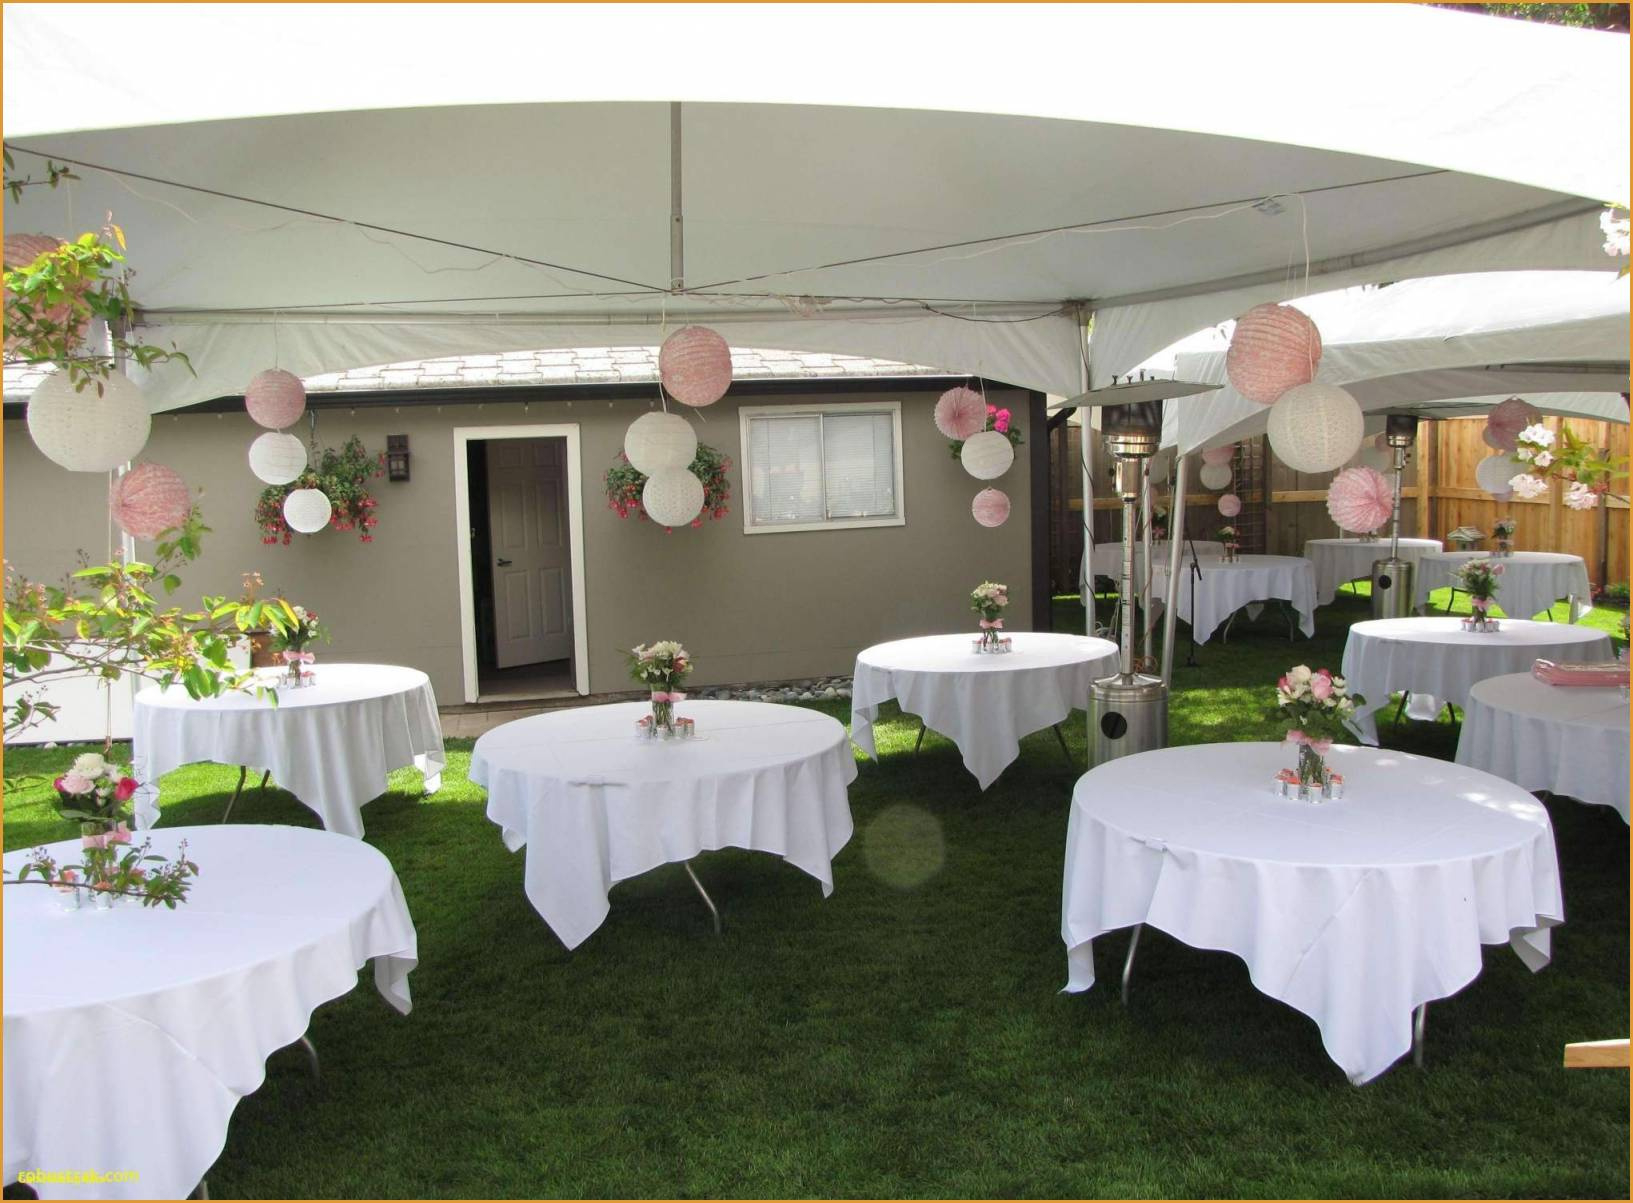 Wedding Ideas American Wedding Decorations Eye Popping Backyard throughout 15 Smart Initiatives of How to Improve Backyard Wedding Reception Decoration Ideas